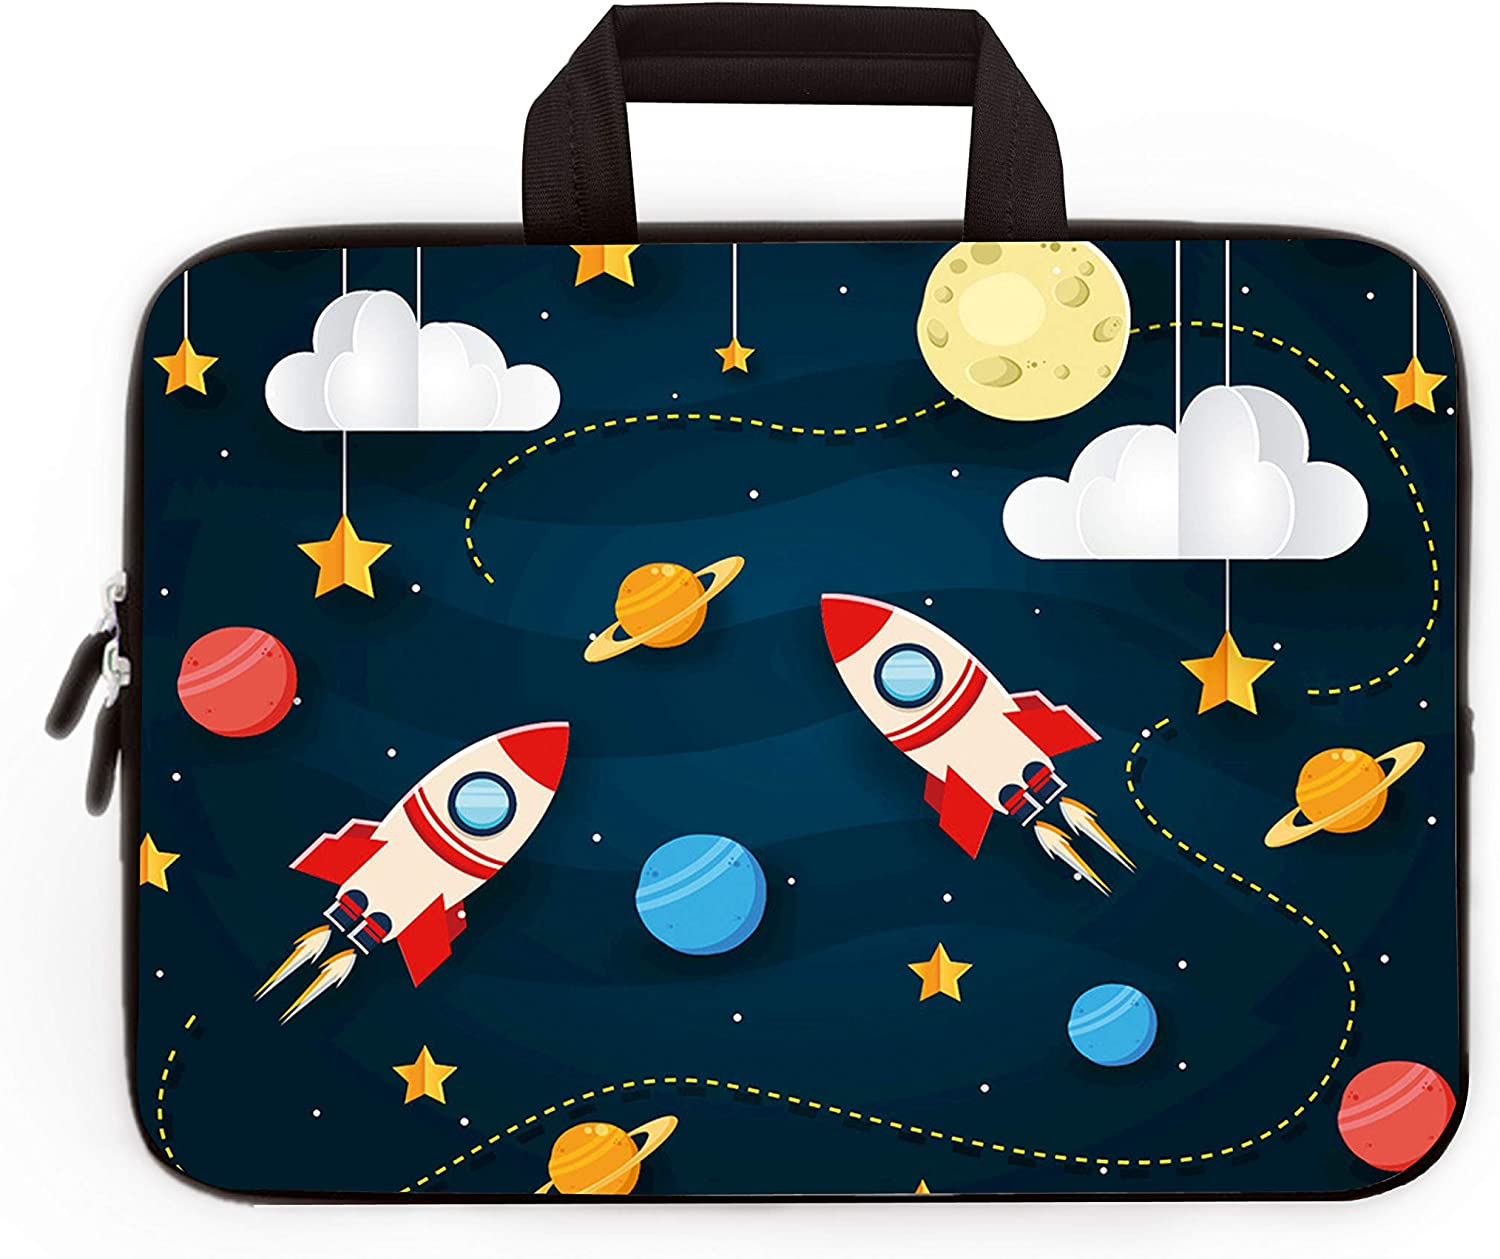 "11"" 11.6"" 12"" 12.1"" 12.5"" inch Laptop Carrying Bag Chromebook Case Notebook Ultrabook Bag Tablet Cover Neoprene Sleeve Fit Apple Macbook Air Samsung Google Acer HP DELL Lenovo Asus (Cool Rocket)"